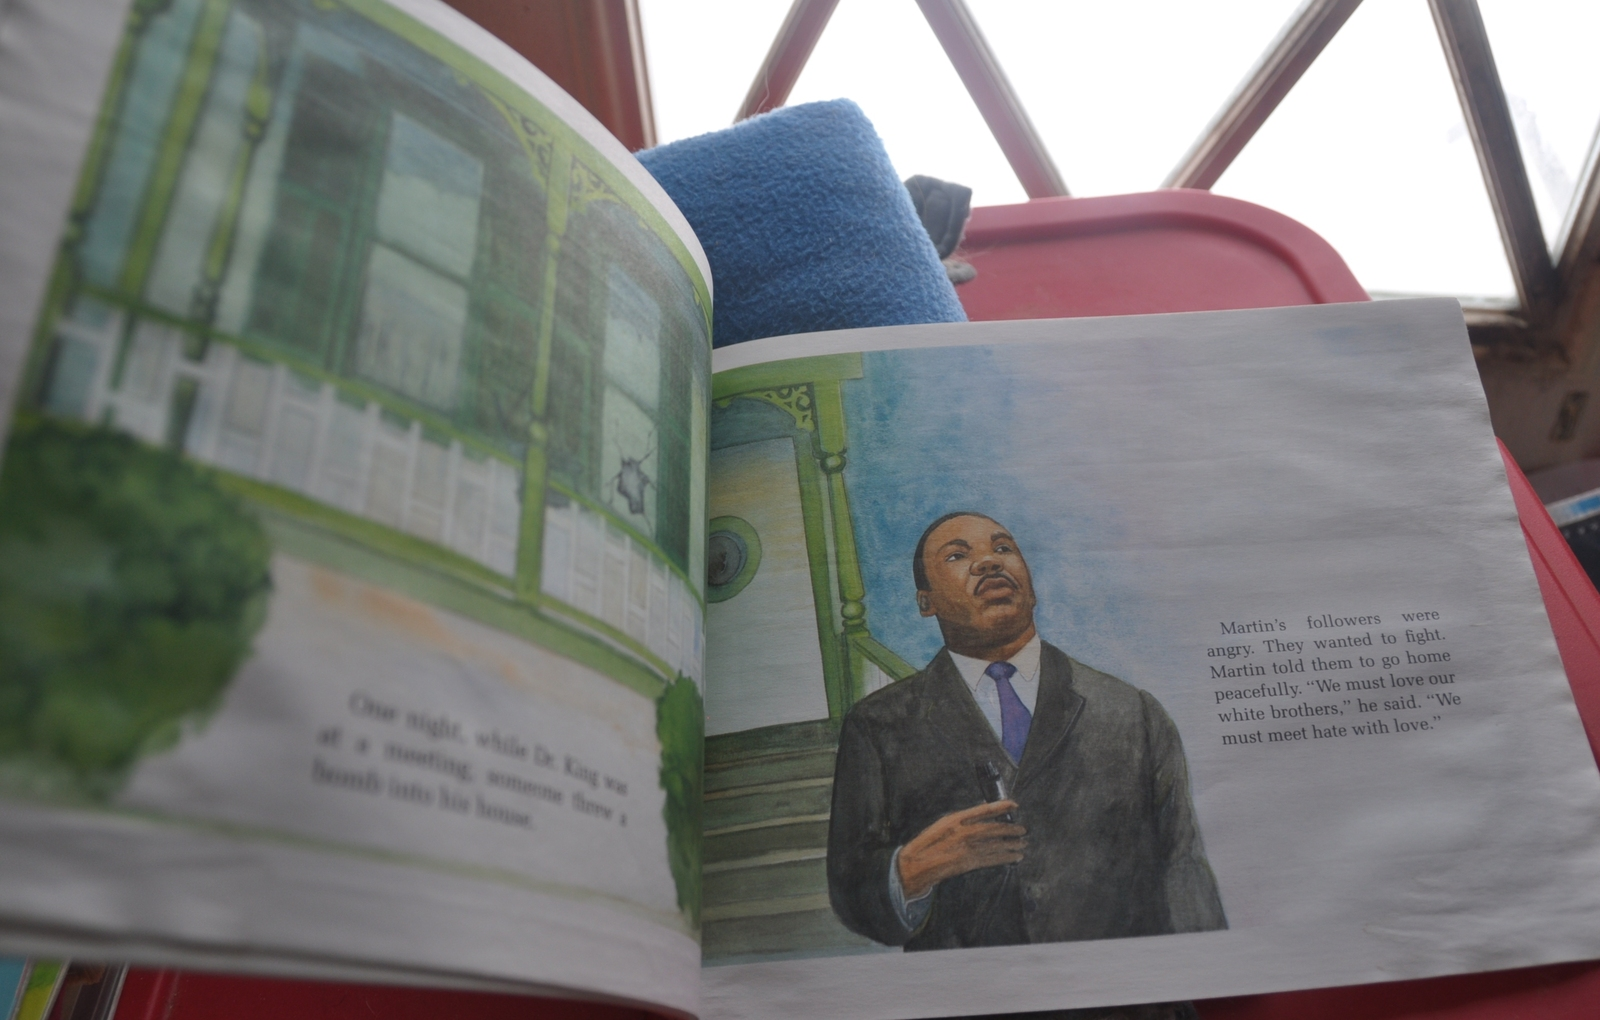 Summary of Martin Luther King Jr.'s Life through a Picture Book by David Adler